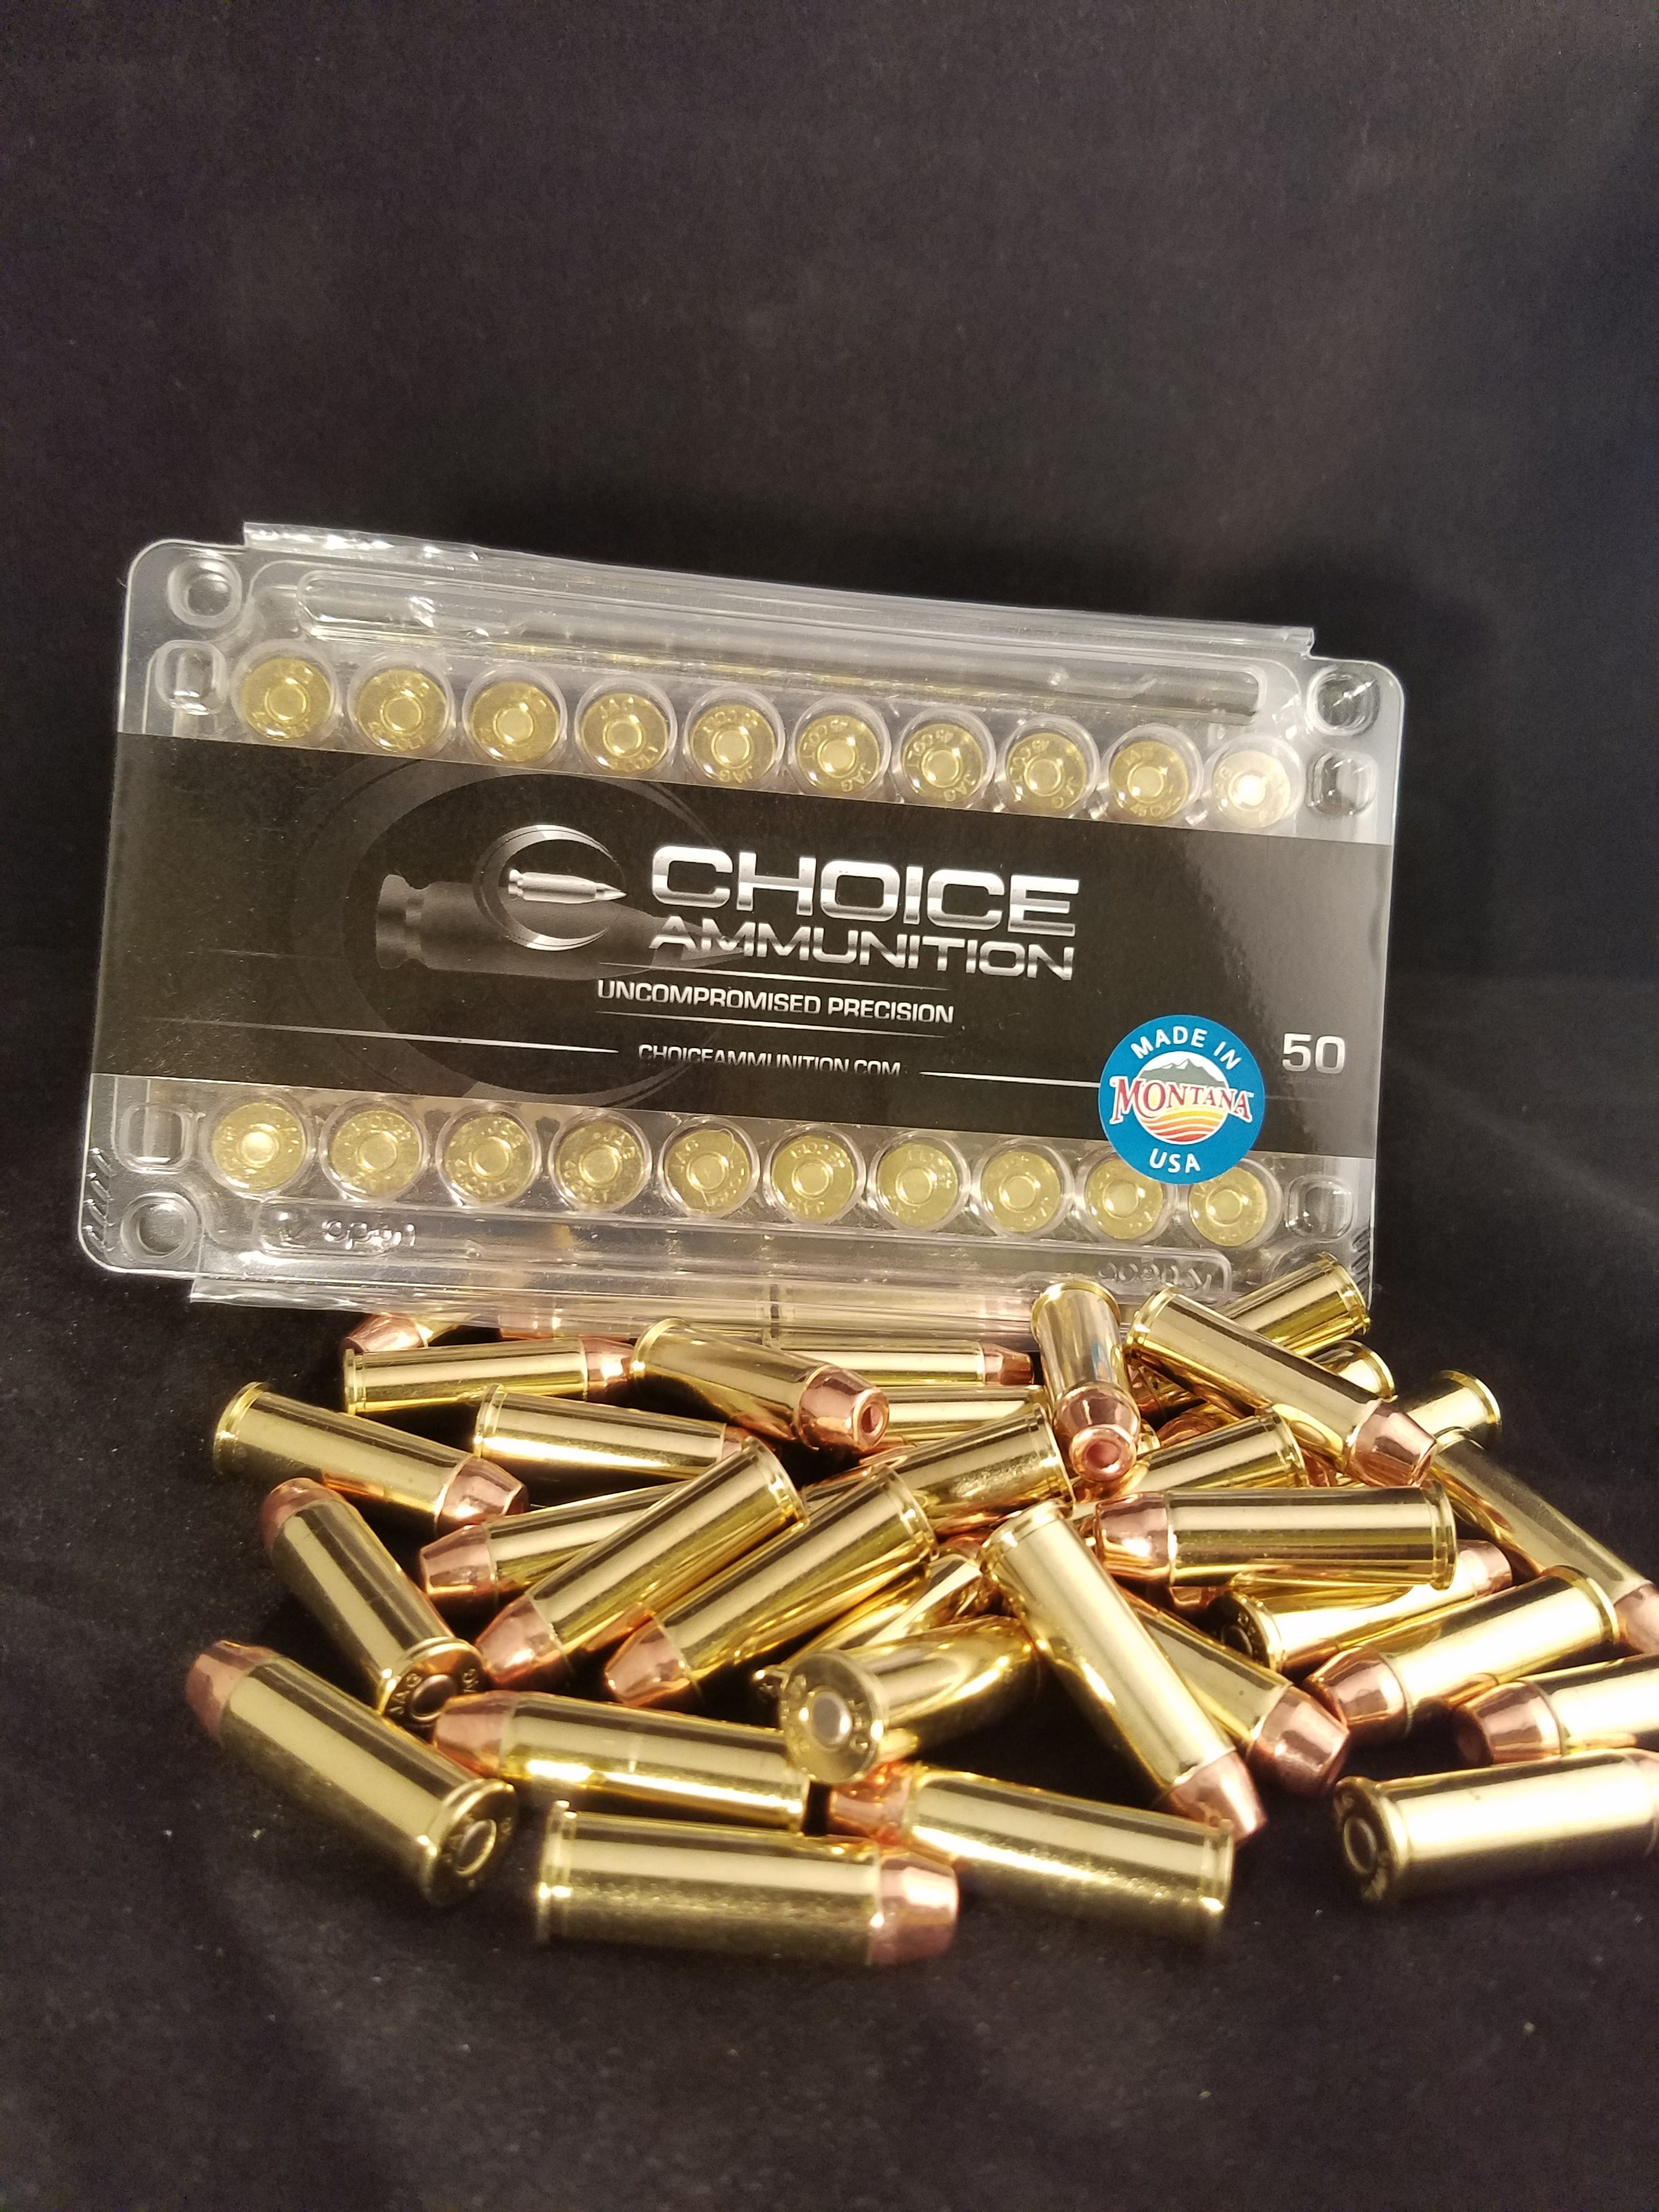 44 Magnum 240 grain plated target hollow point 100% hand-loaded!!